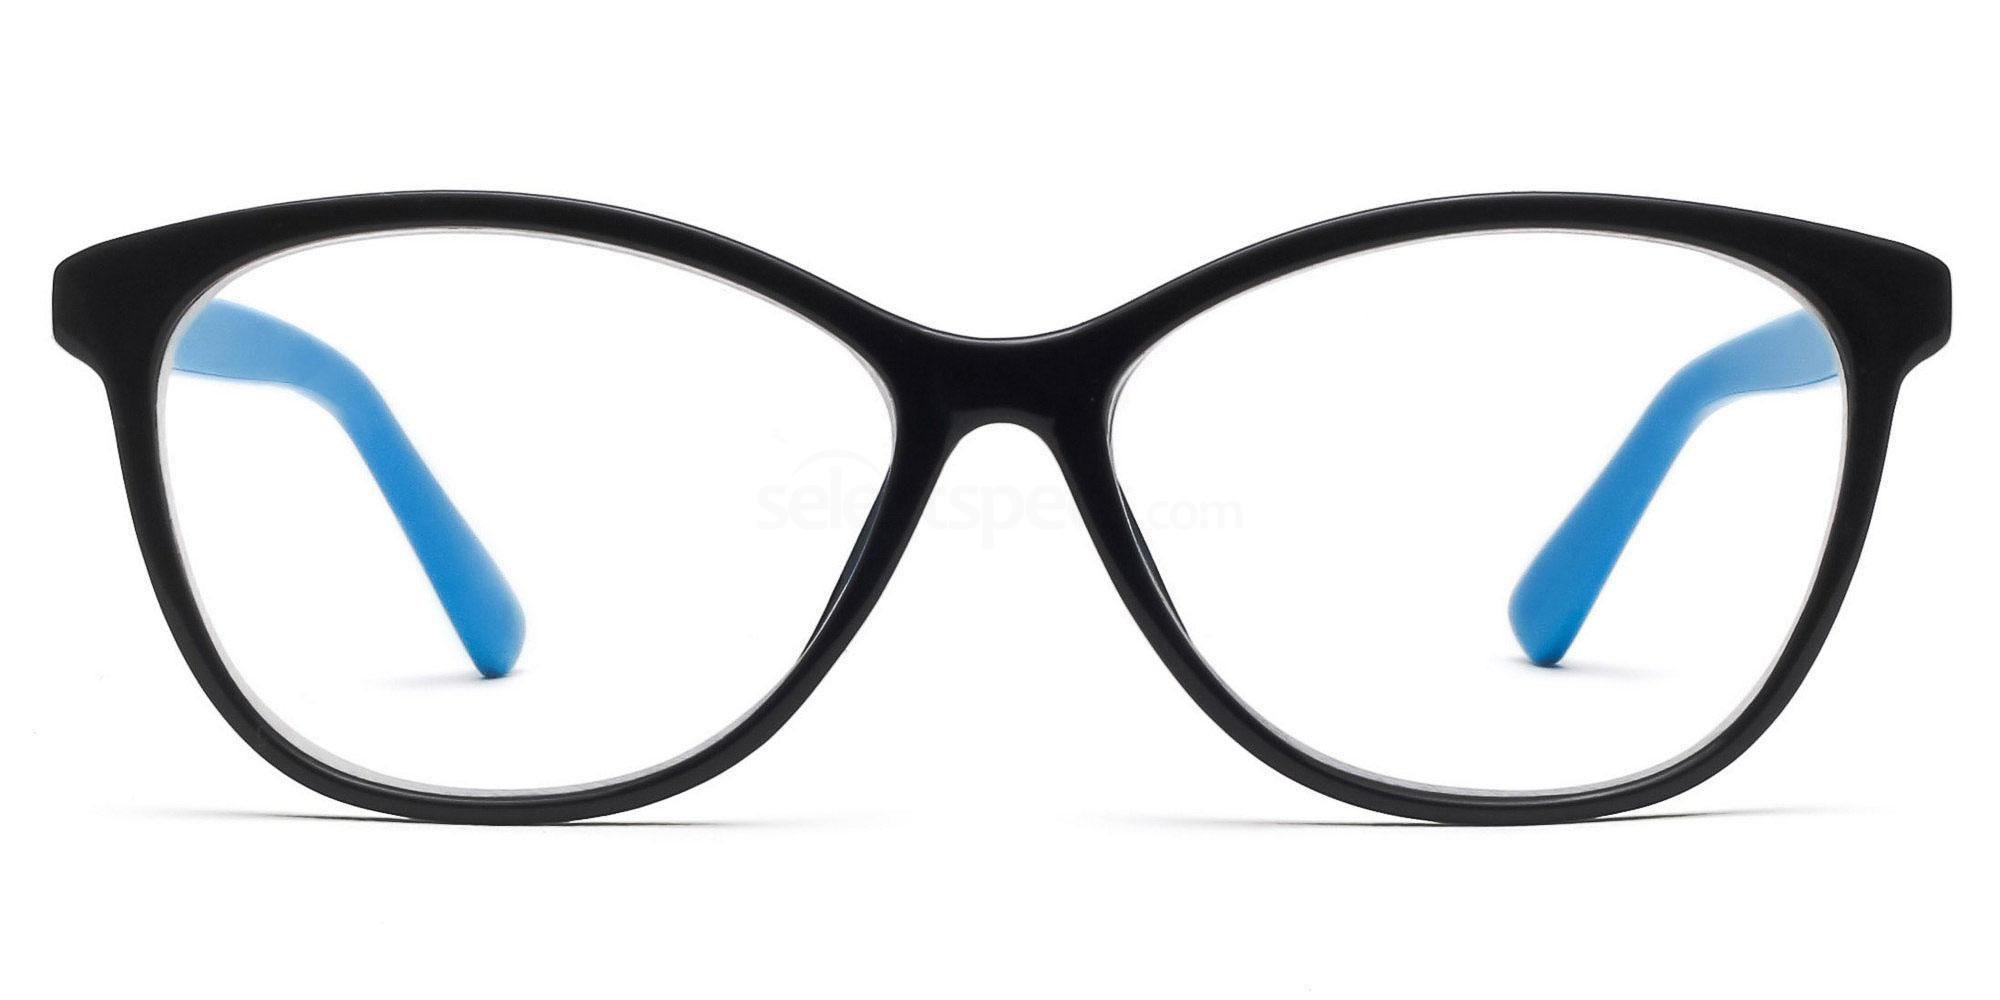 COL.88 2439 - Black and Blue Glasses, Savannah